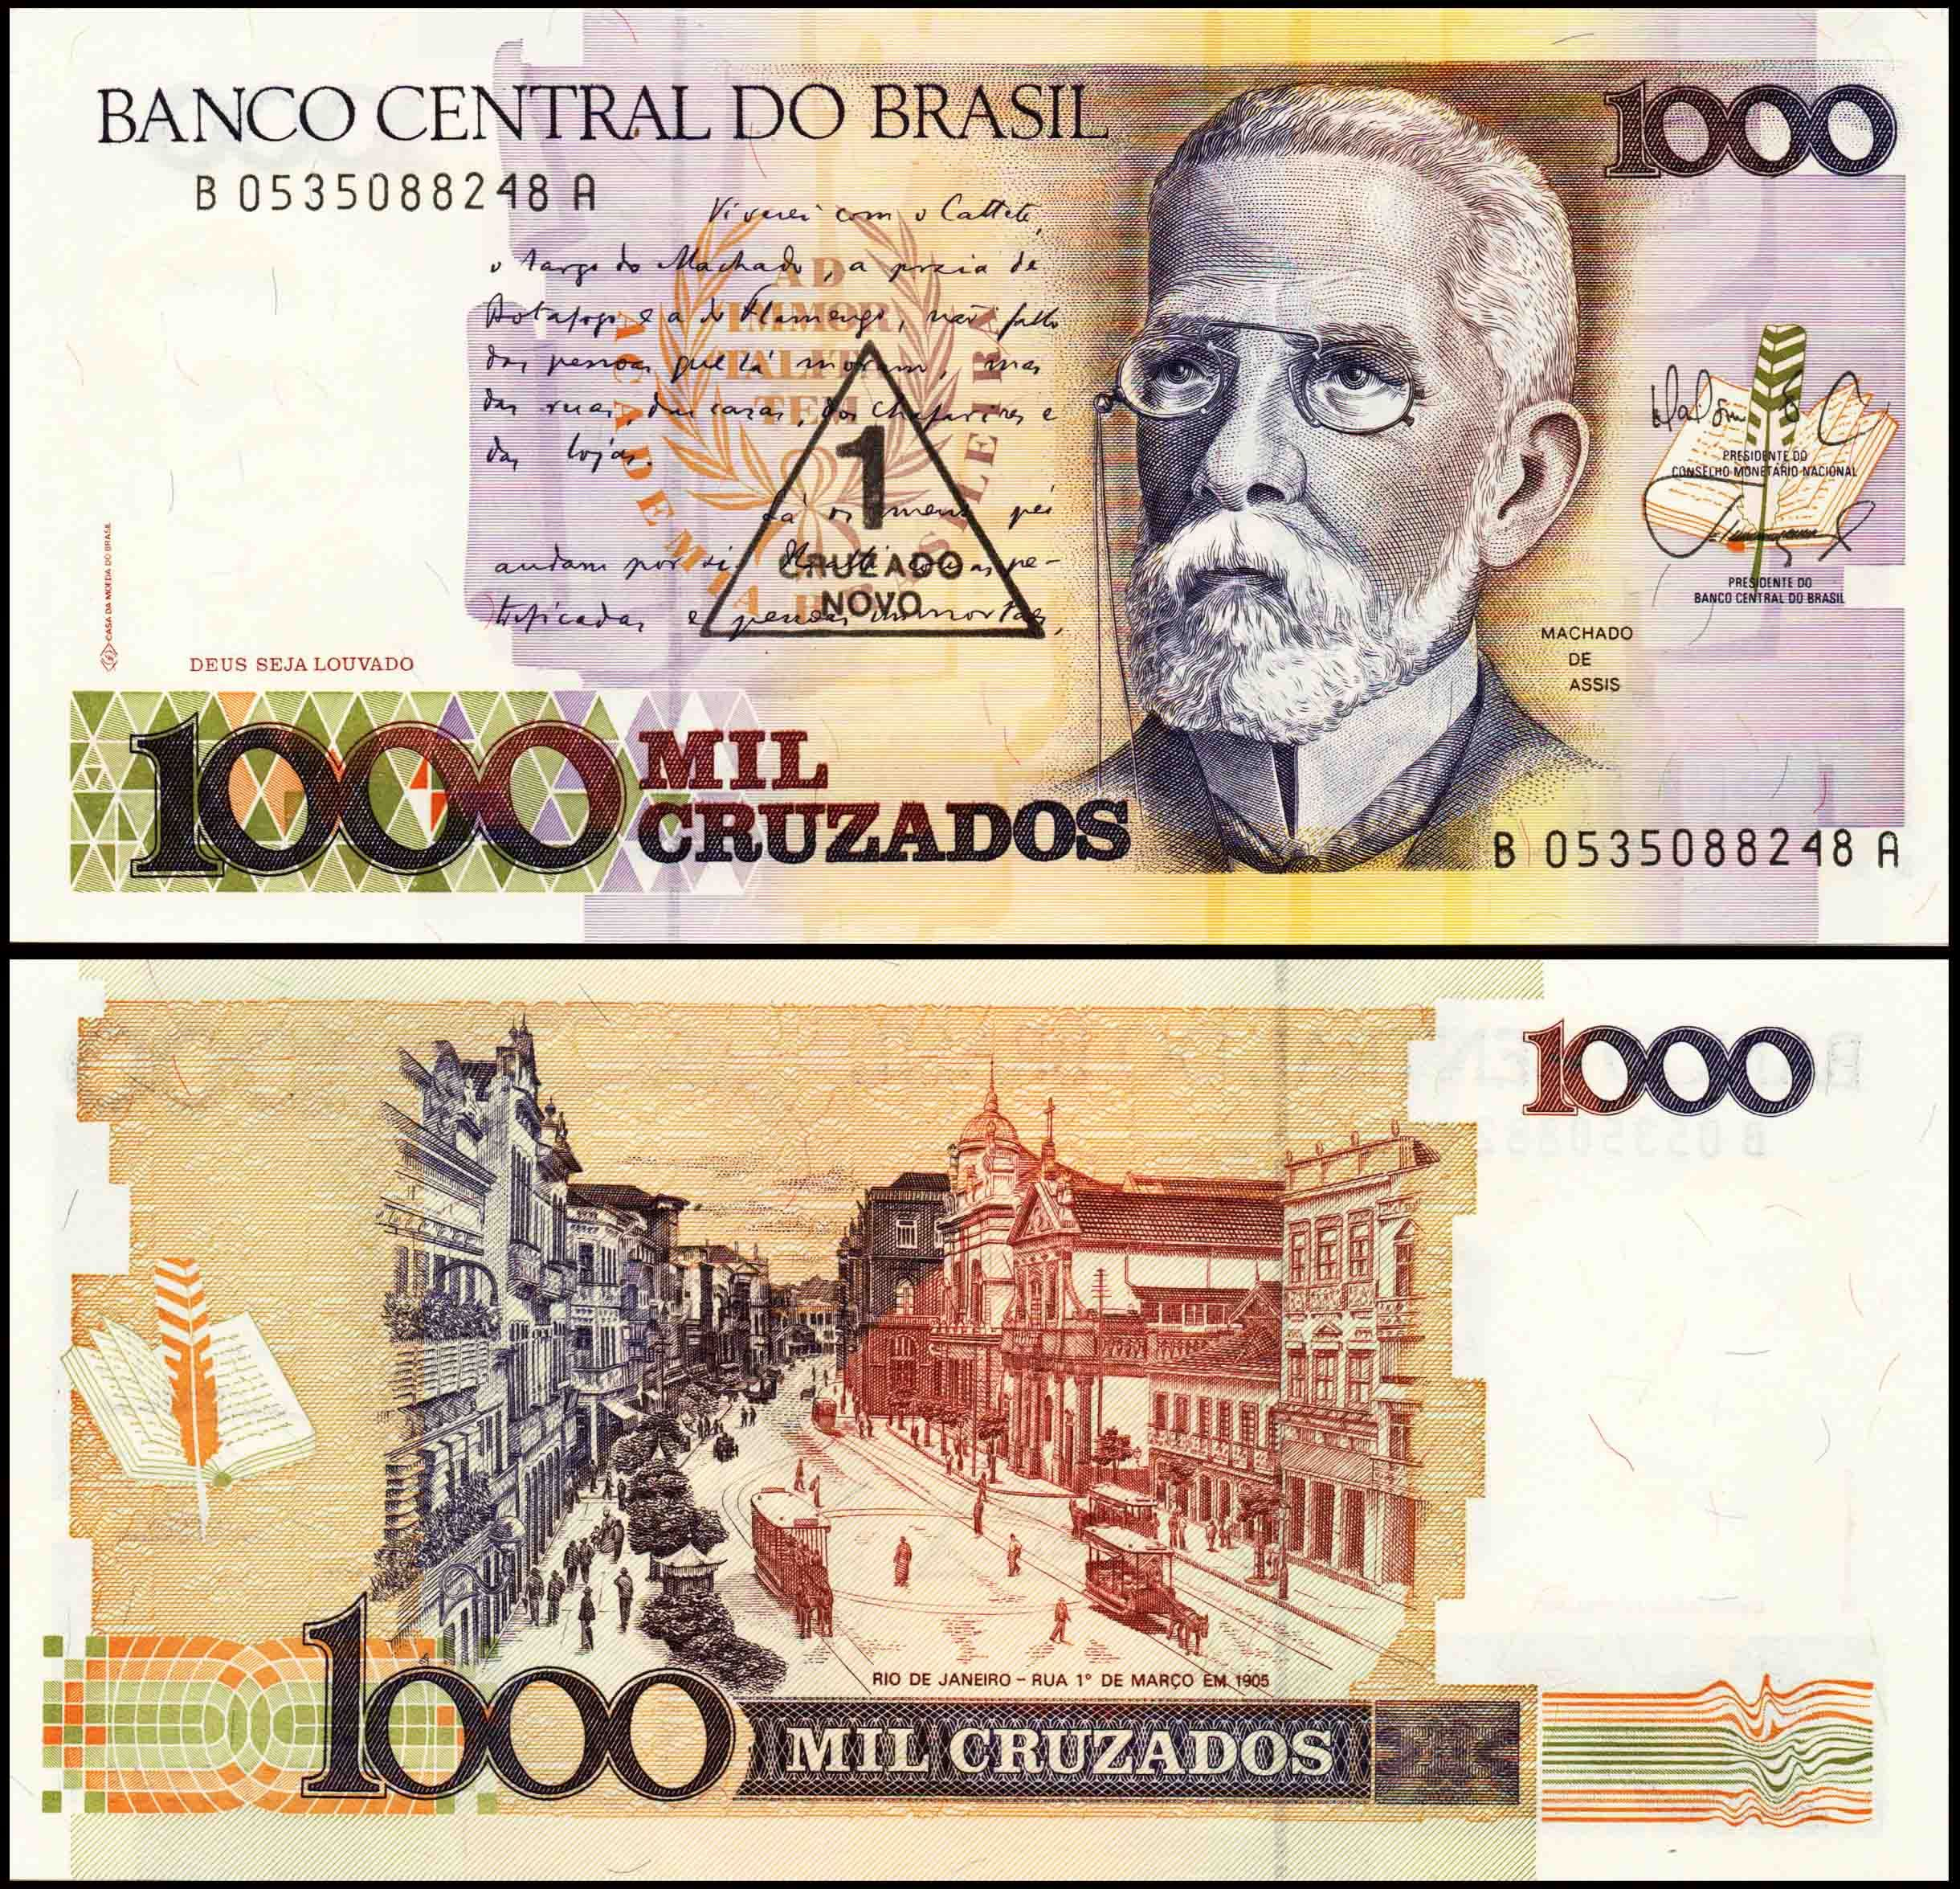 Brazil 1000 Cruzados Unc Banknote Bank Notes Banknotes Money